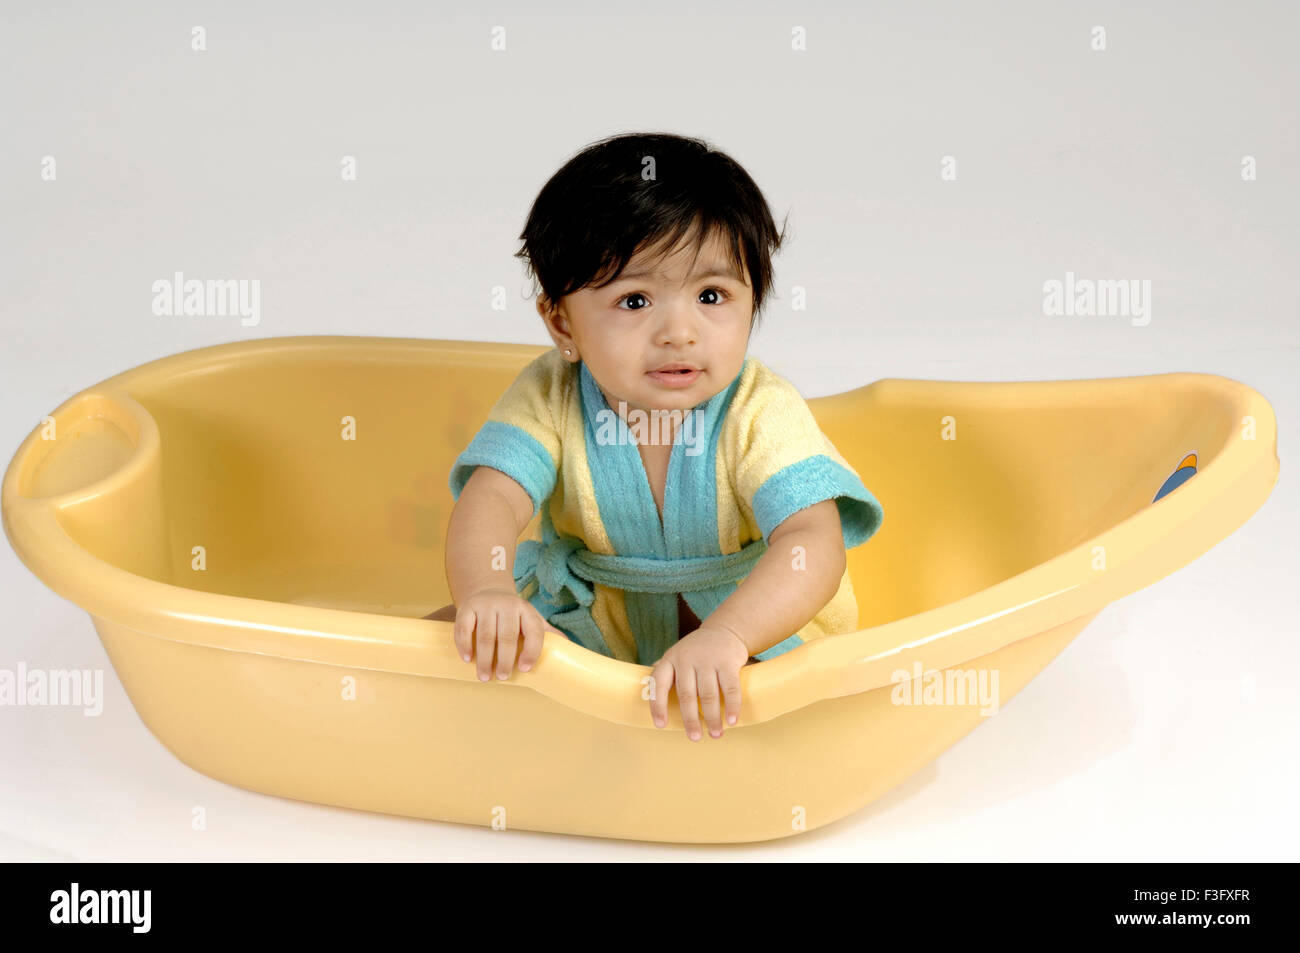 Baby In Yellow Bath Tub Stock Photos & Baby In Yellow Bath Tub Stock ...